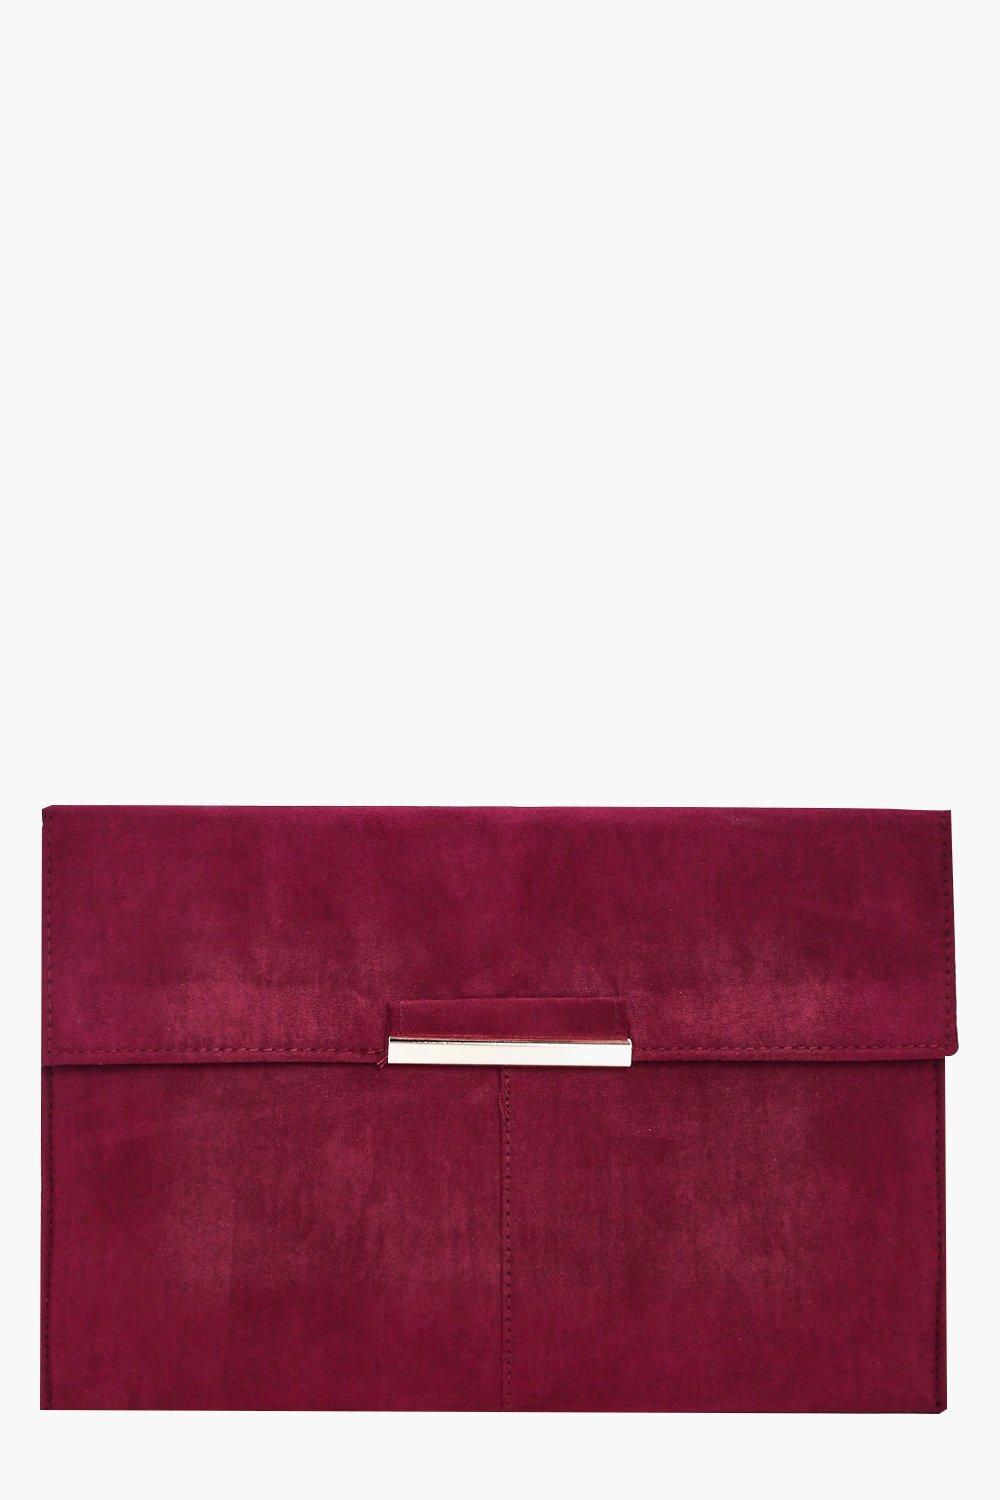 Suedette Coloured Clutch - wine - Kirsten Suedette